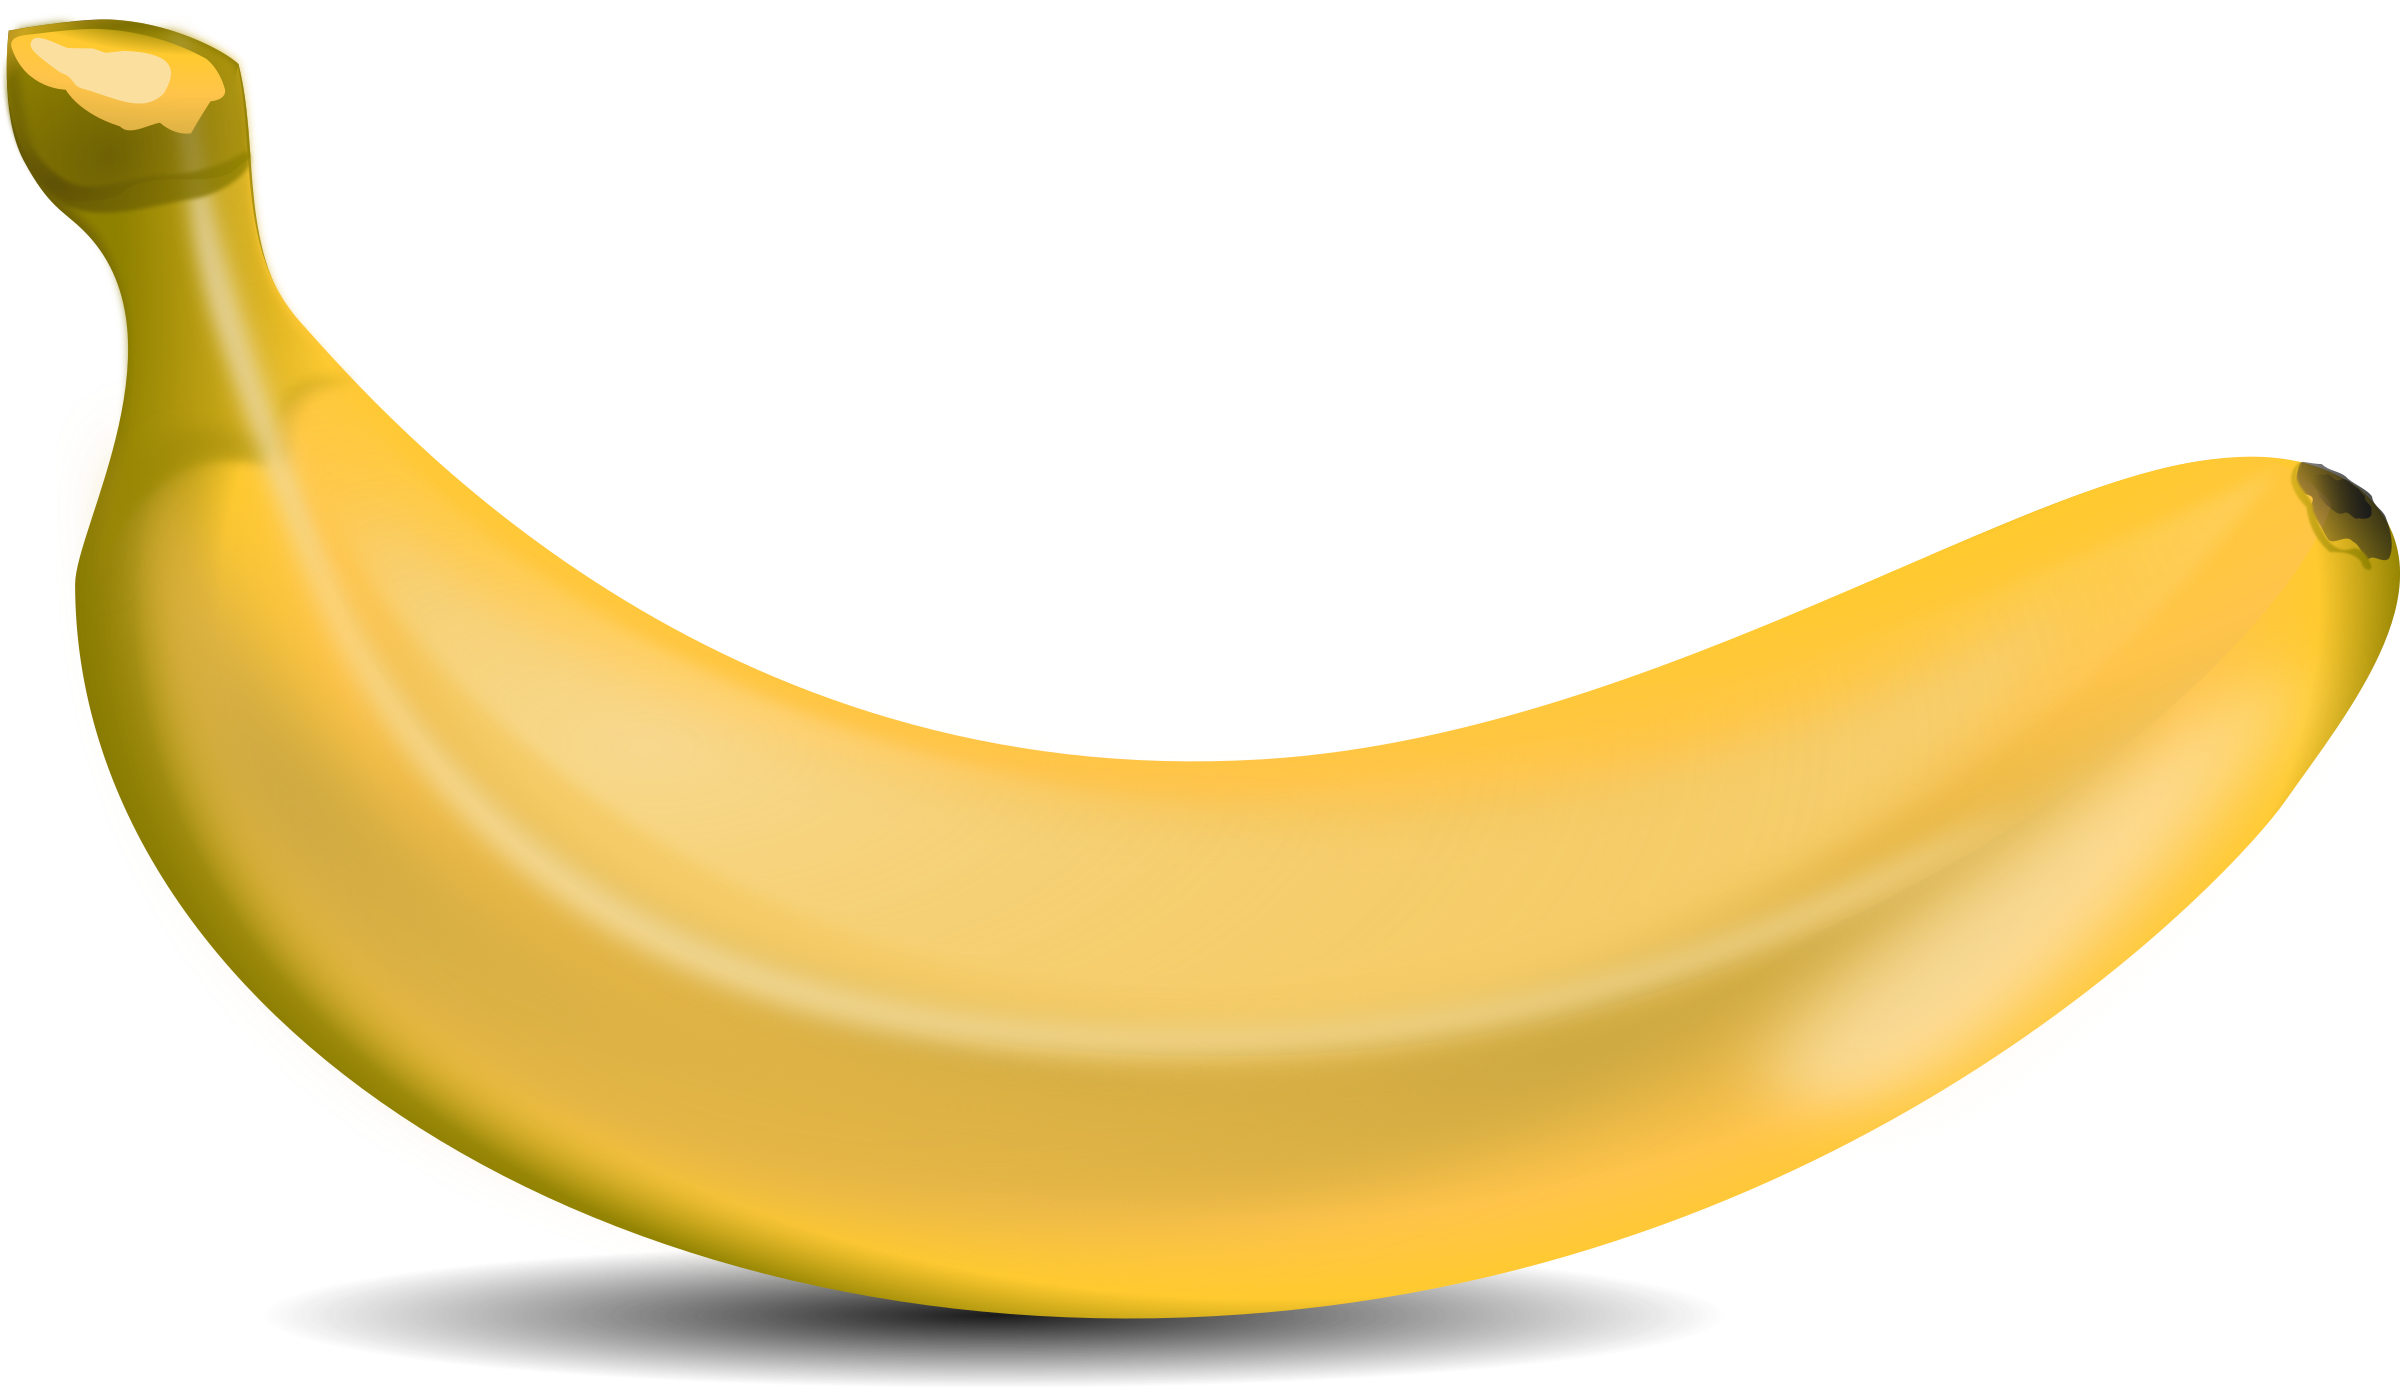 Internet transparent banana. Png images free download graphic black and white library